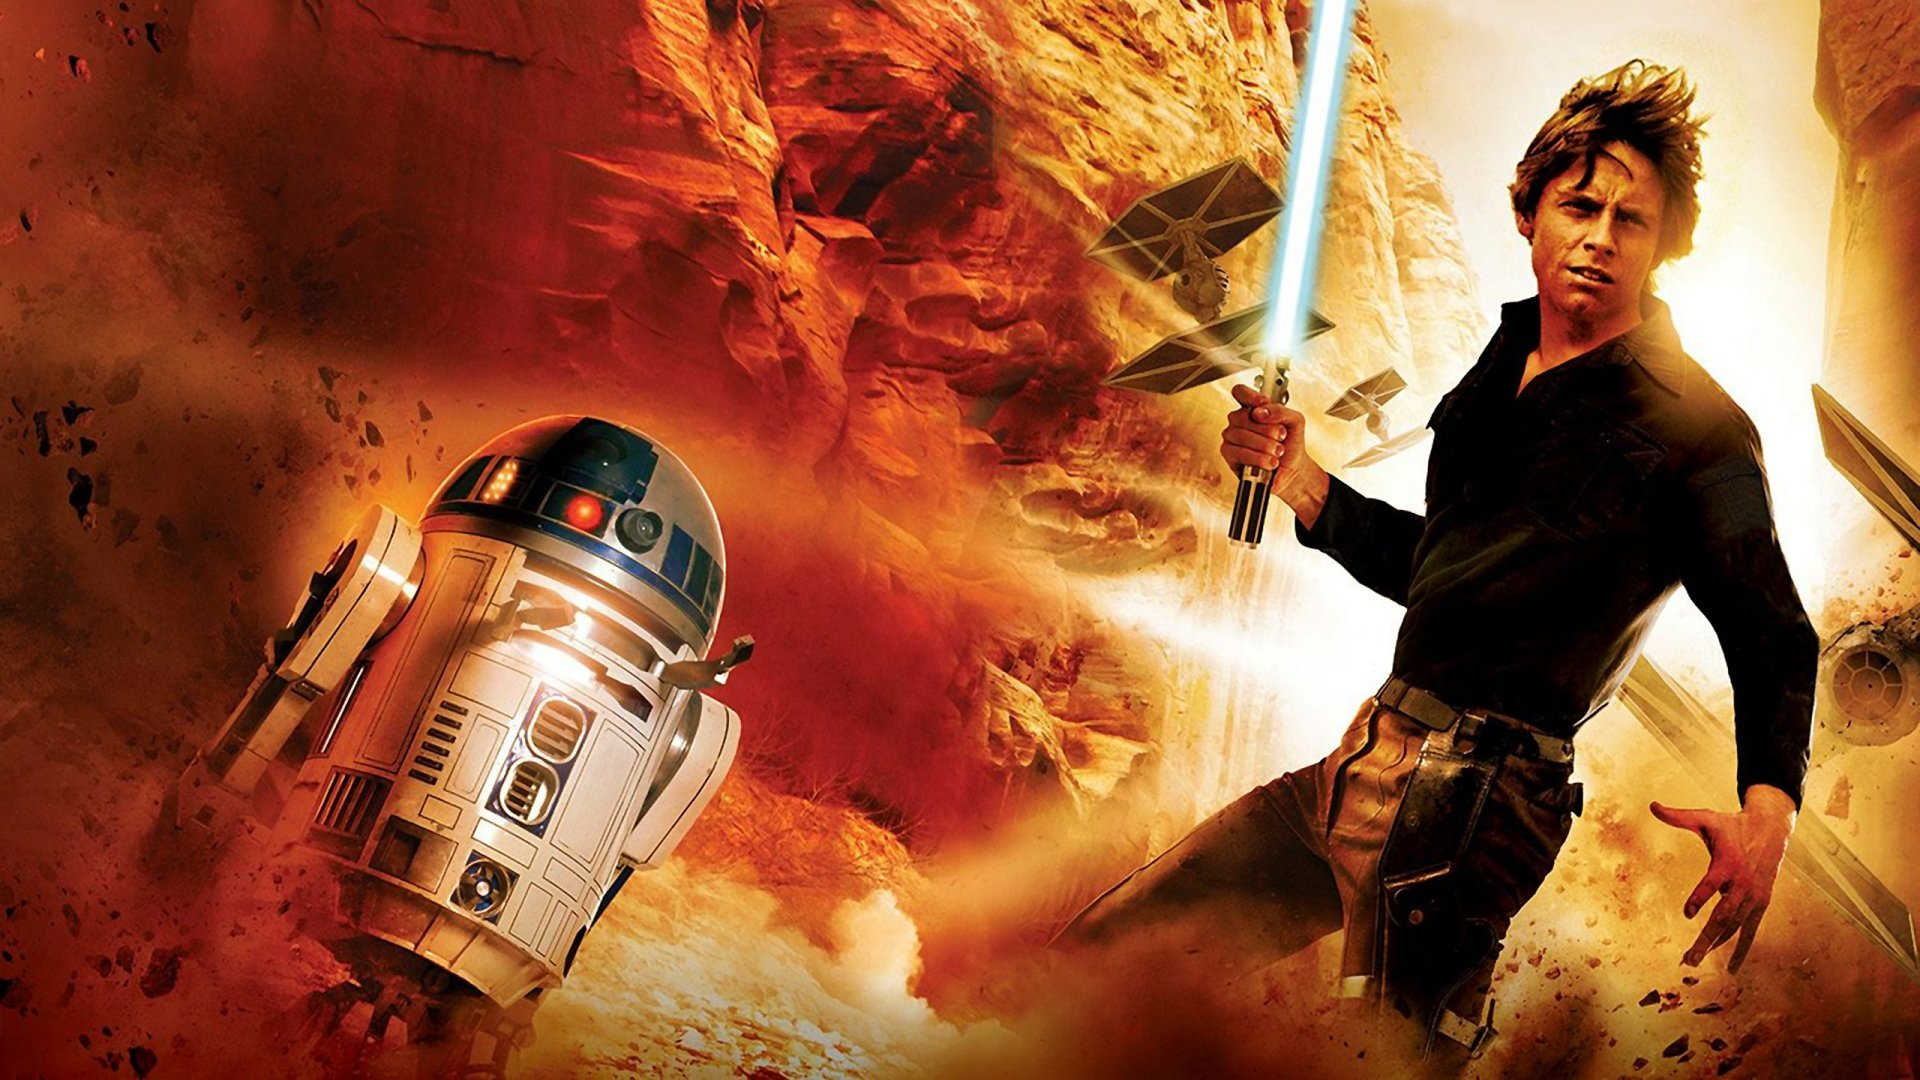 Movie - Star Wars  Luke Skywalker Lightsaber R2-D2 Wallpaper